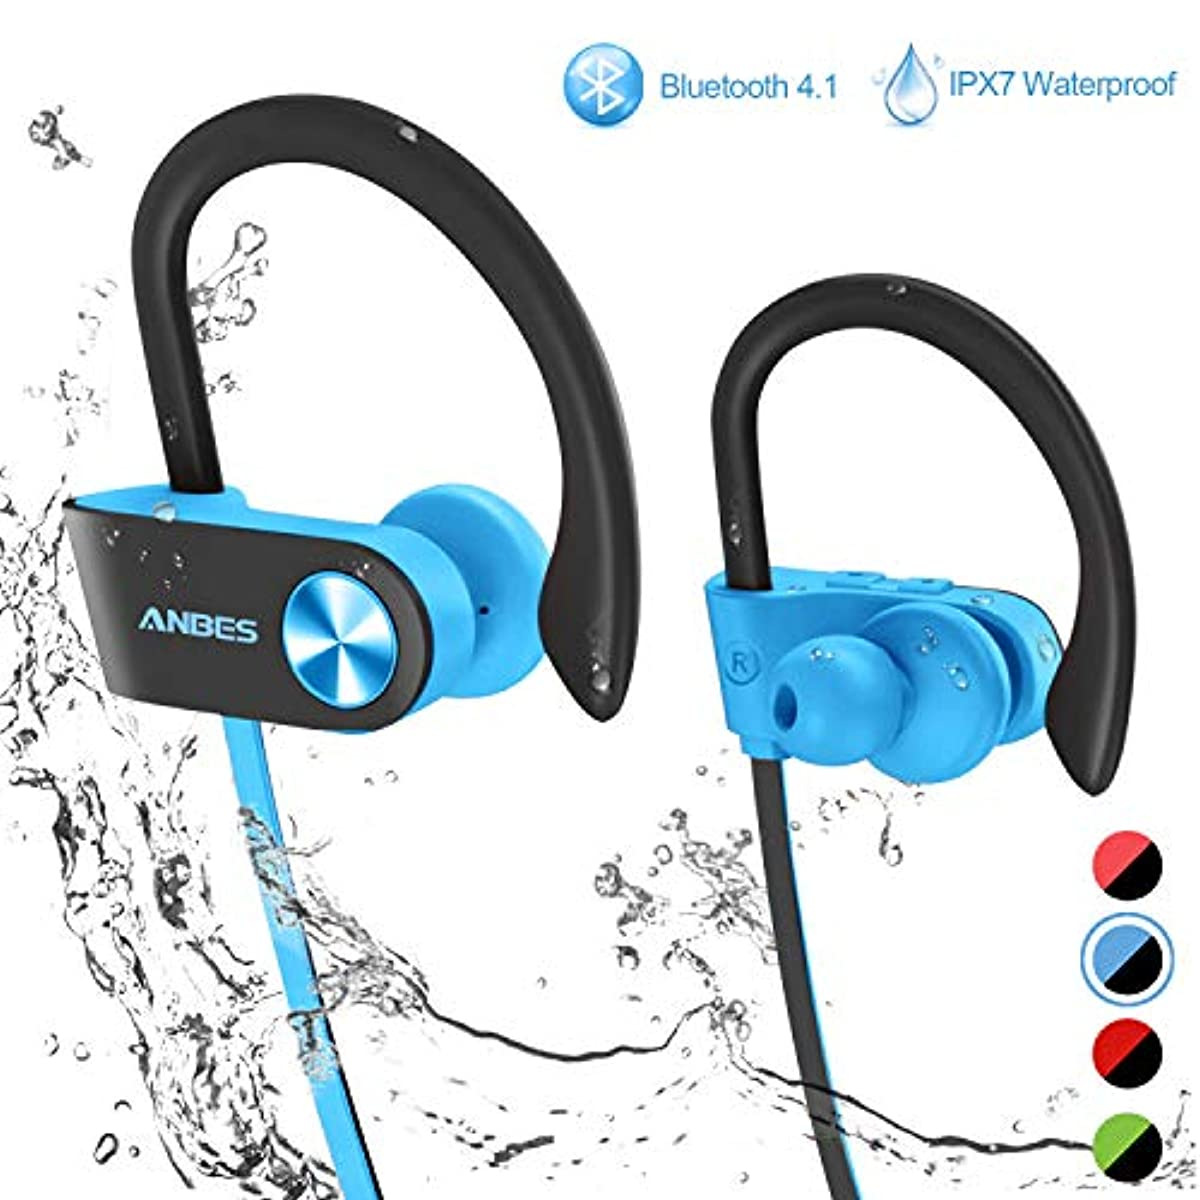 7130898627f Bluetooth Headphones,ANBES IPX7 Waterproof Wireless Earbuds,Sports Earbuds  with